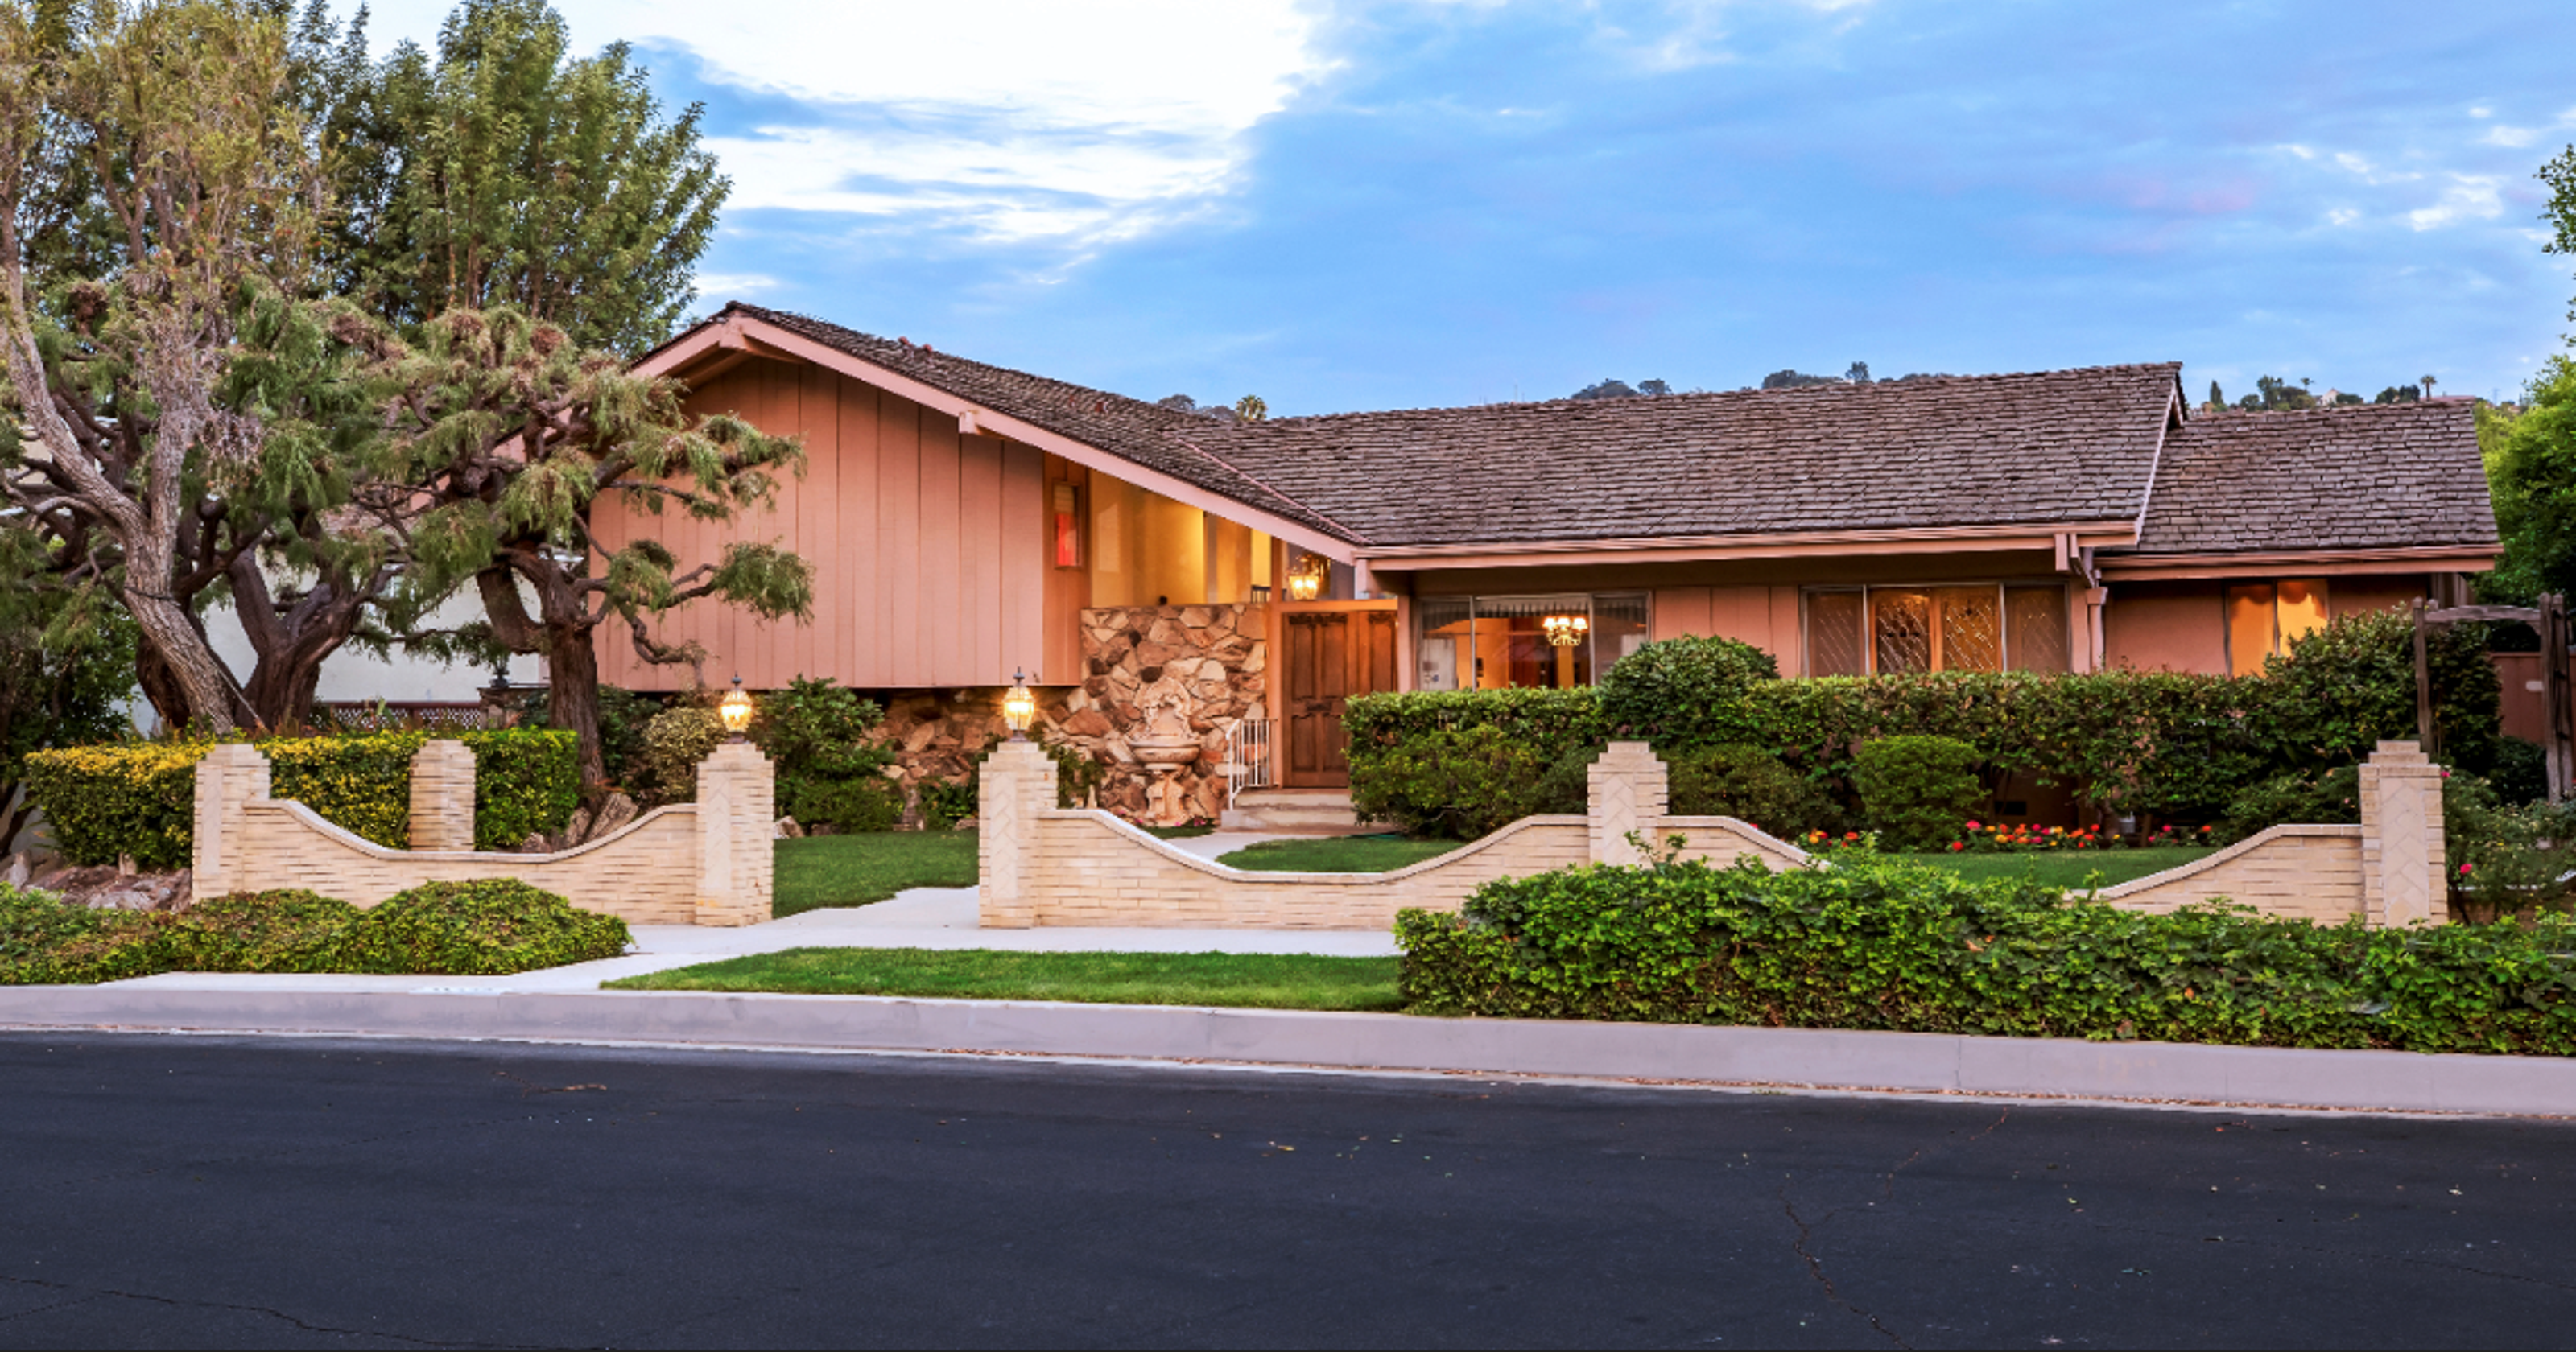 For 1 88 million the brady bunch house can be yours